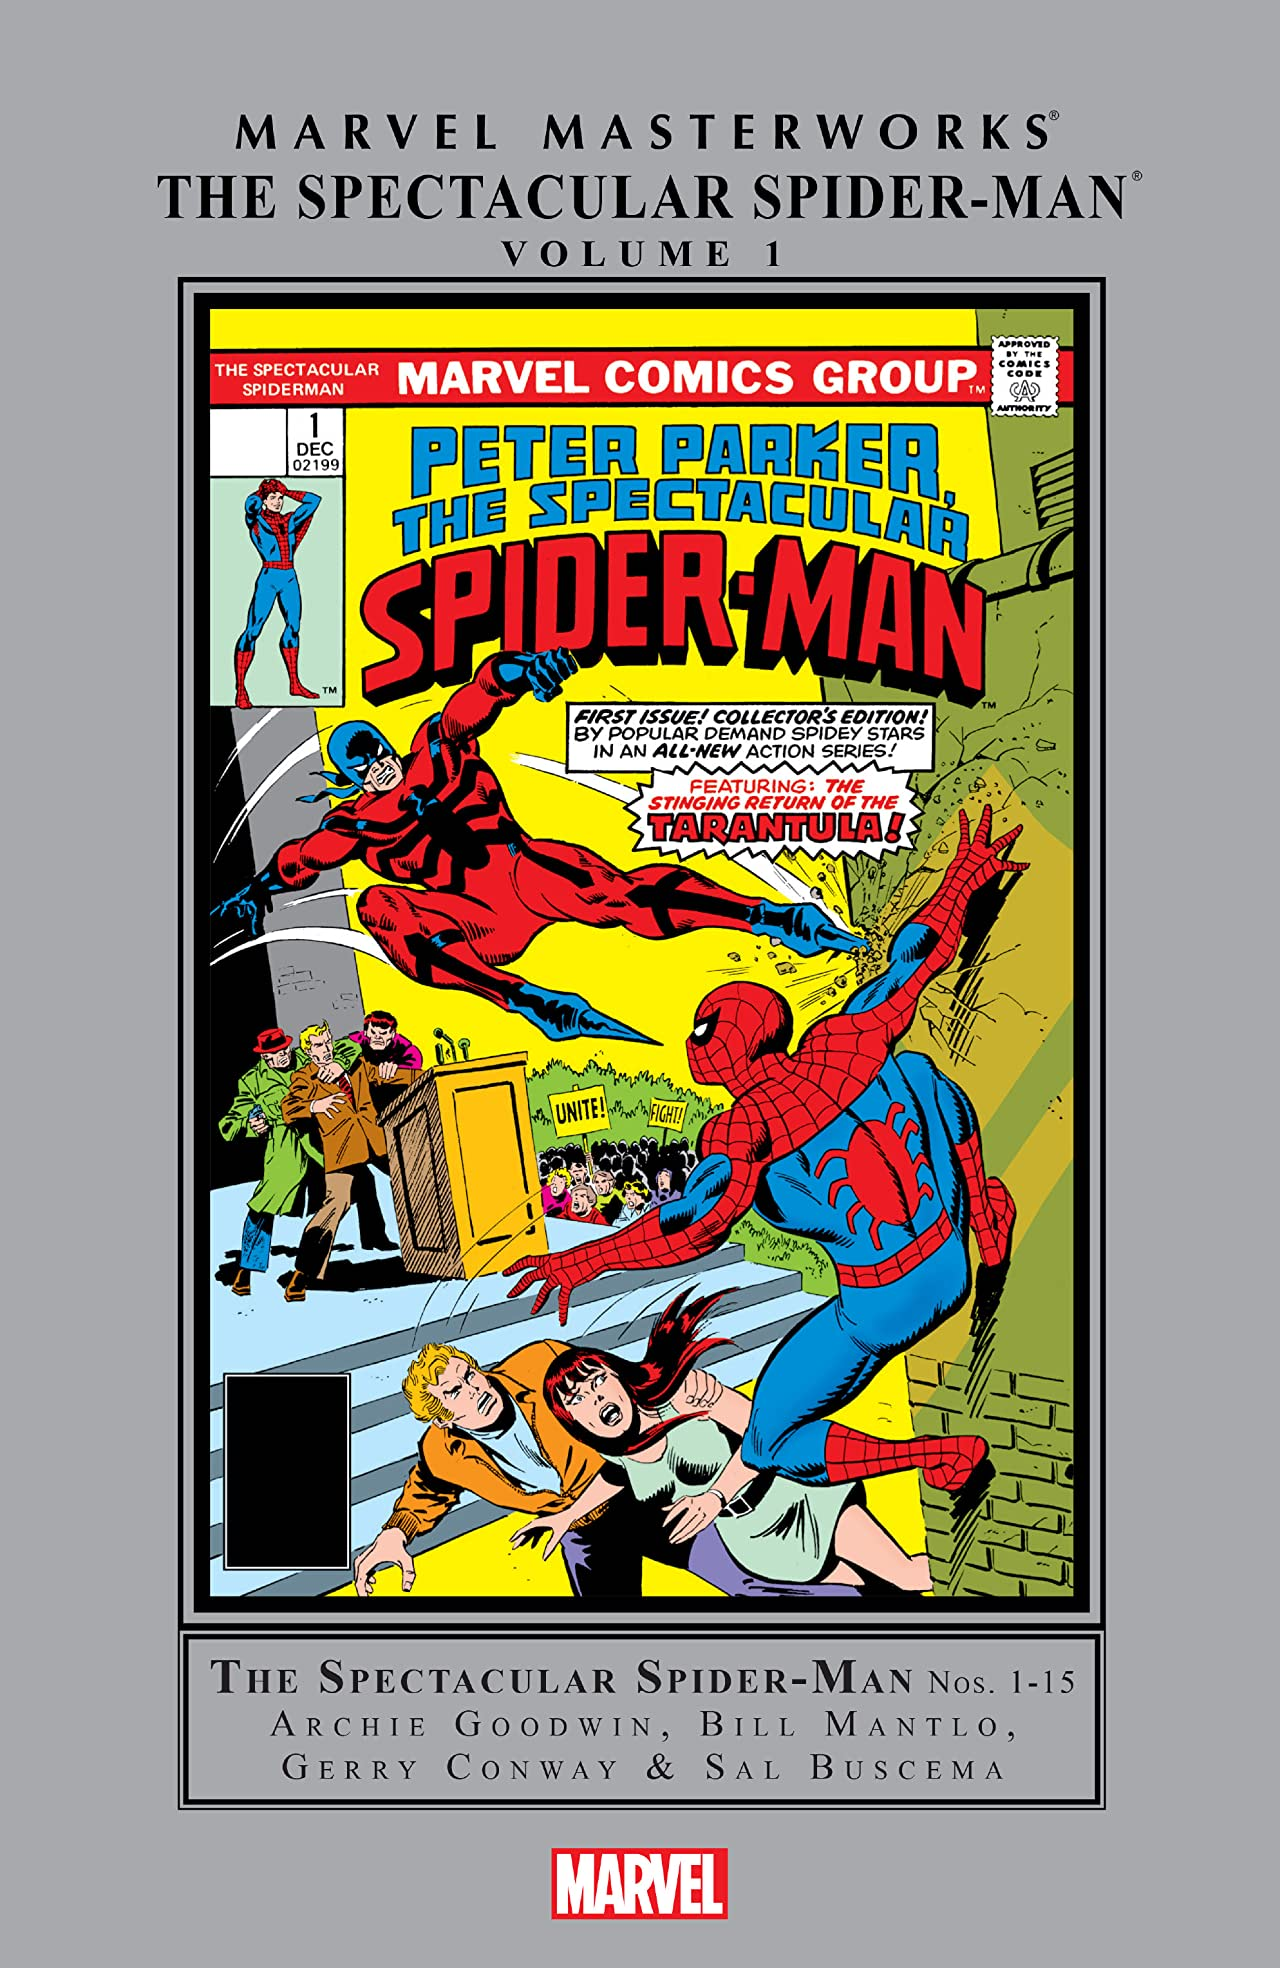 Spectacular Spider-Man Masterworks Vol. 1